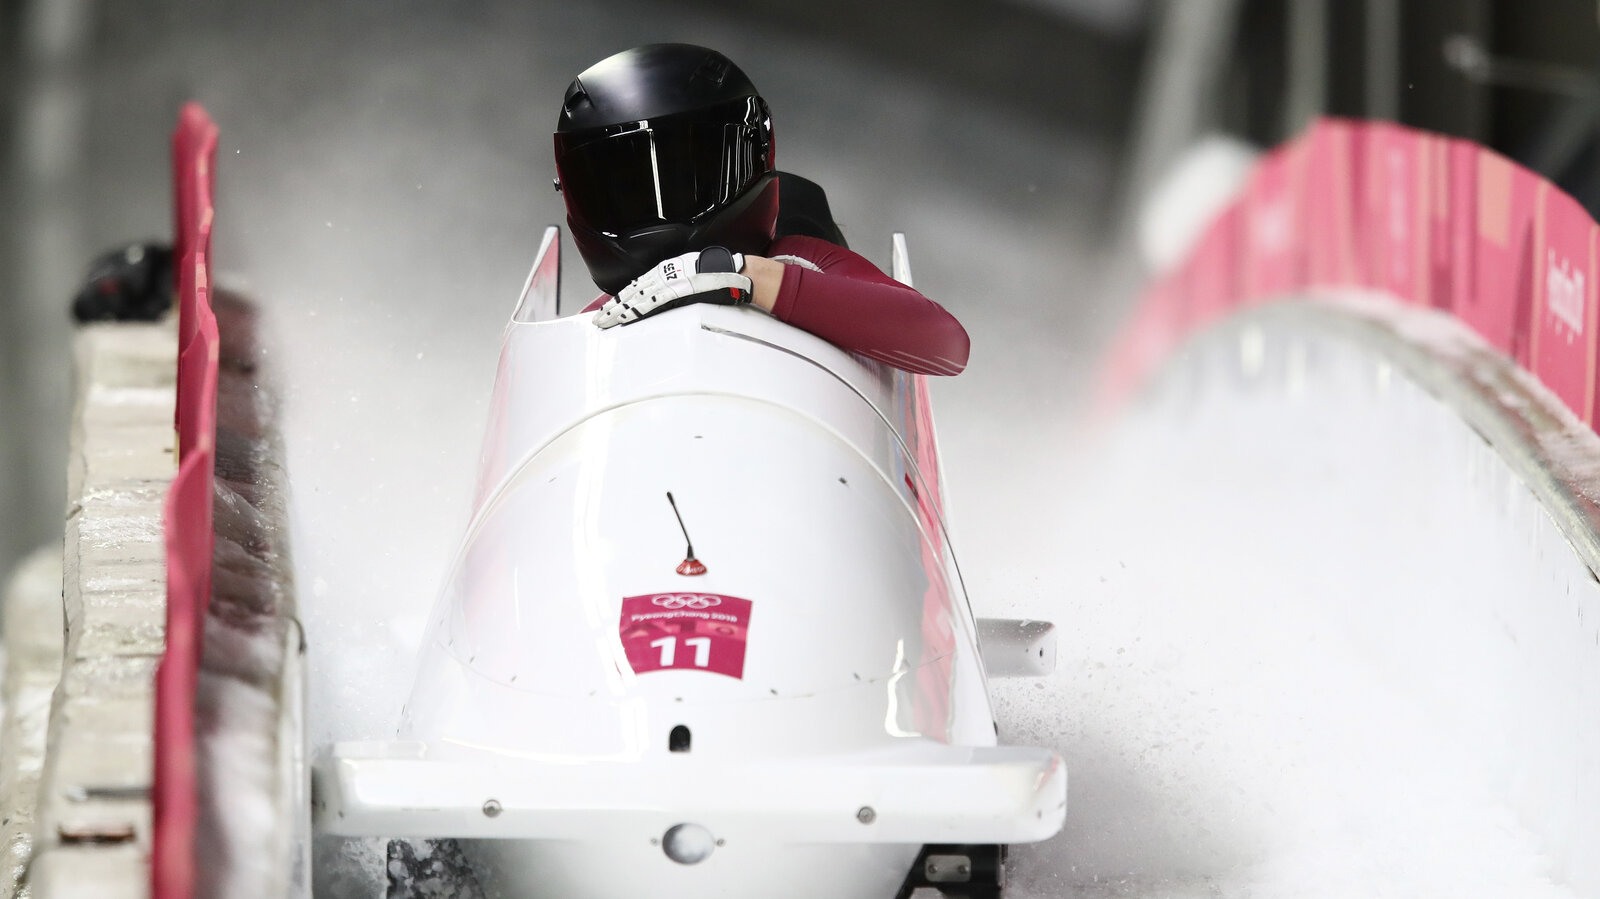 Russian bobsledder disqualified for doping, court says (npr.org)